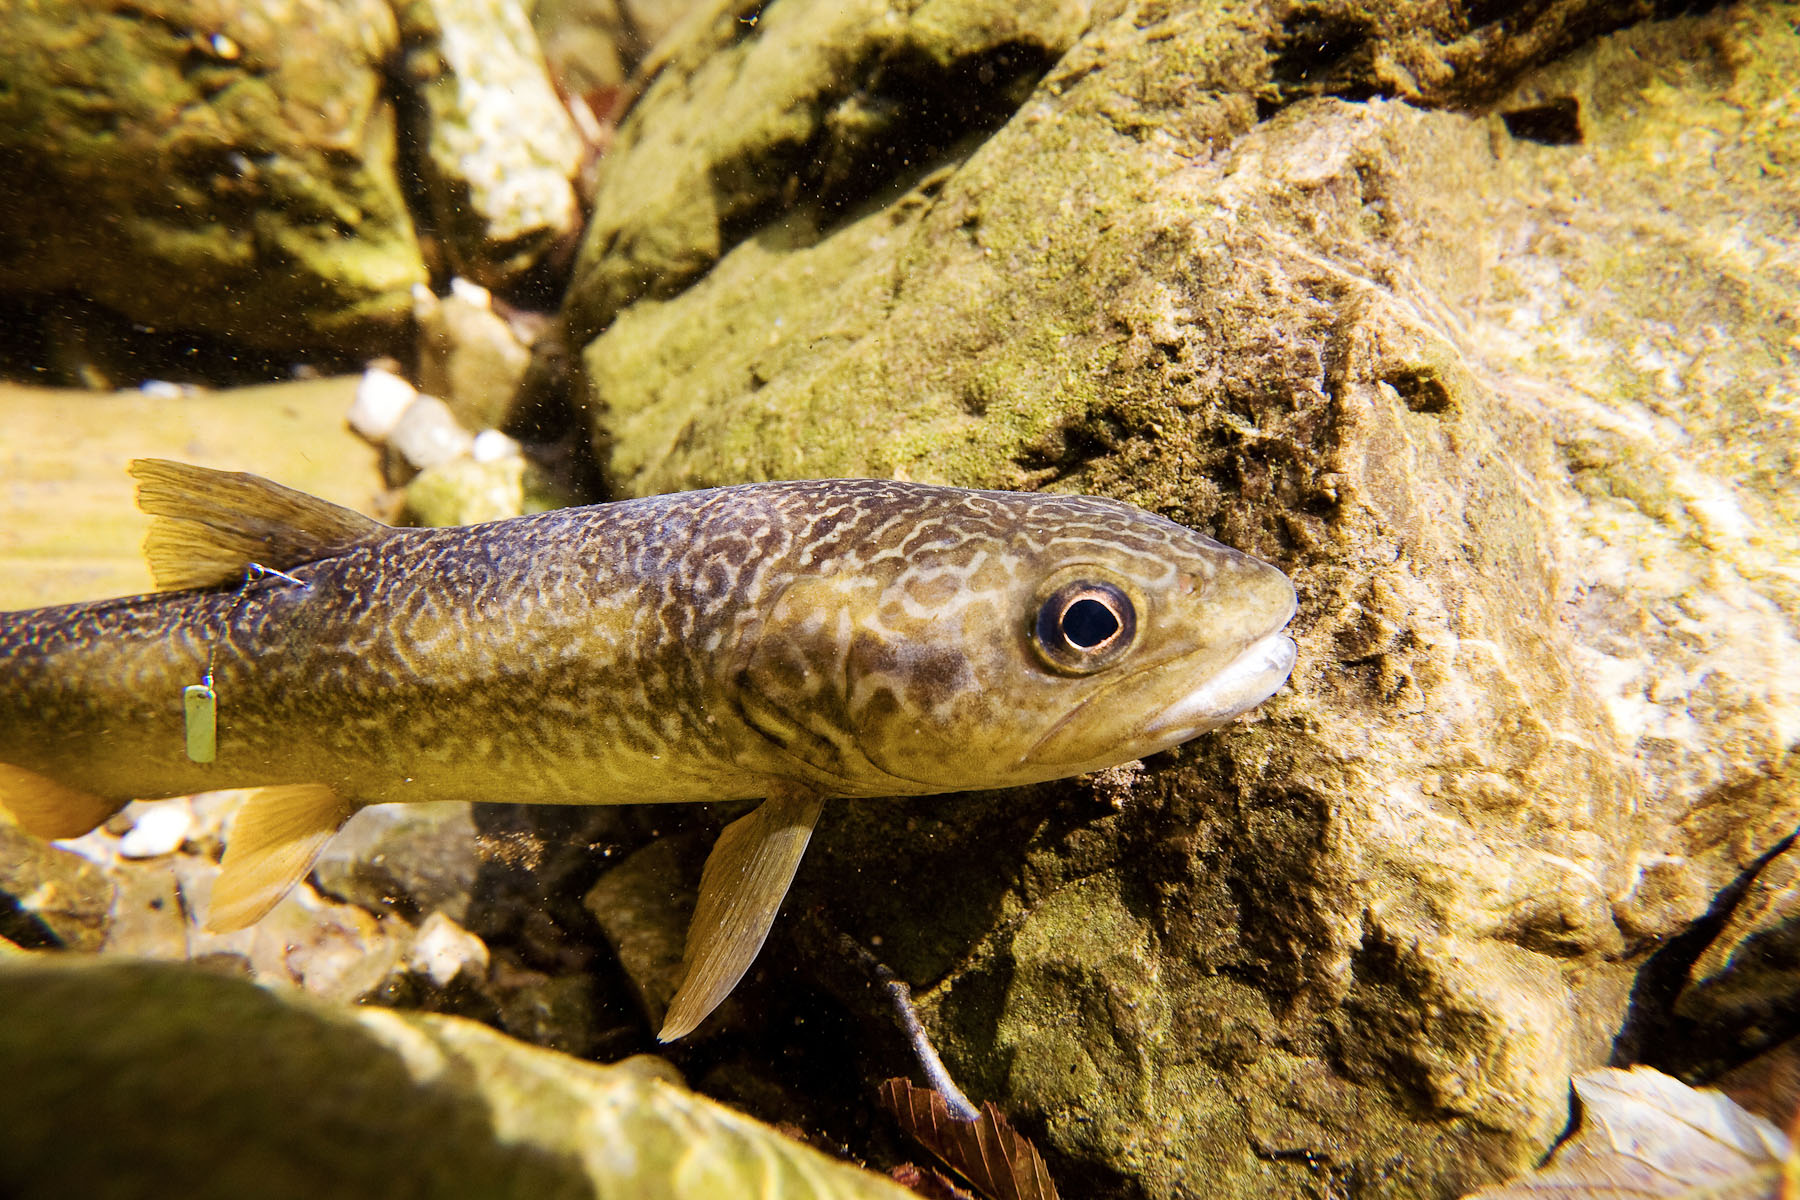 The pure Marble trout are tagged to indicate their number, where they are from and even which sector of the stream they are from to see how these fish migrate in their own streams.